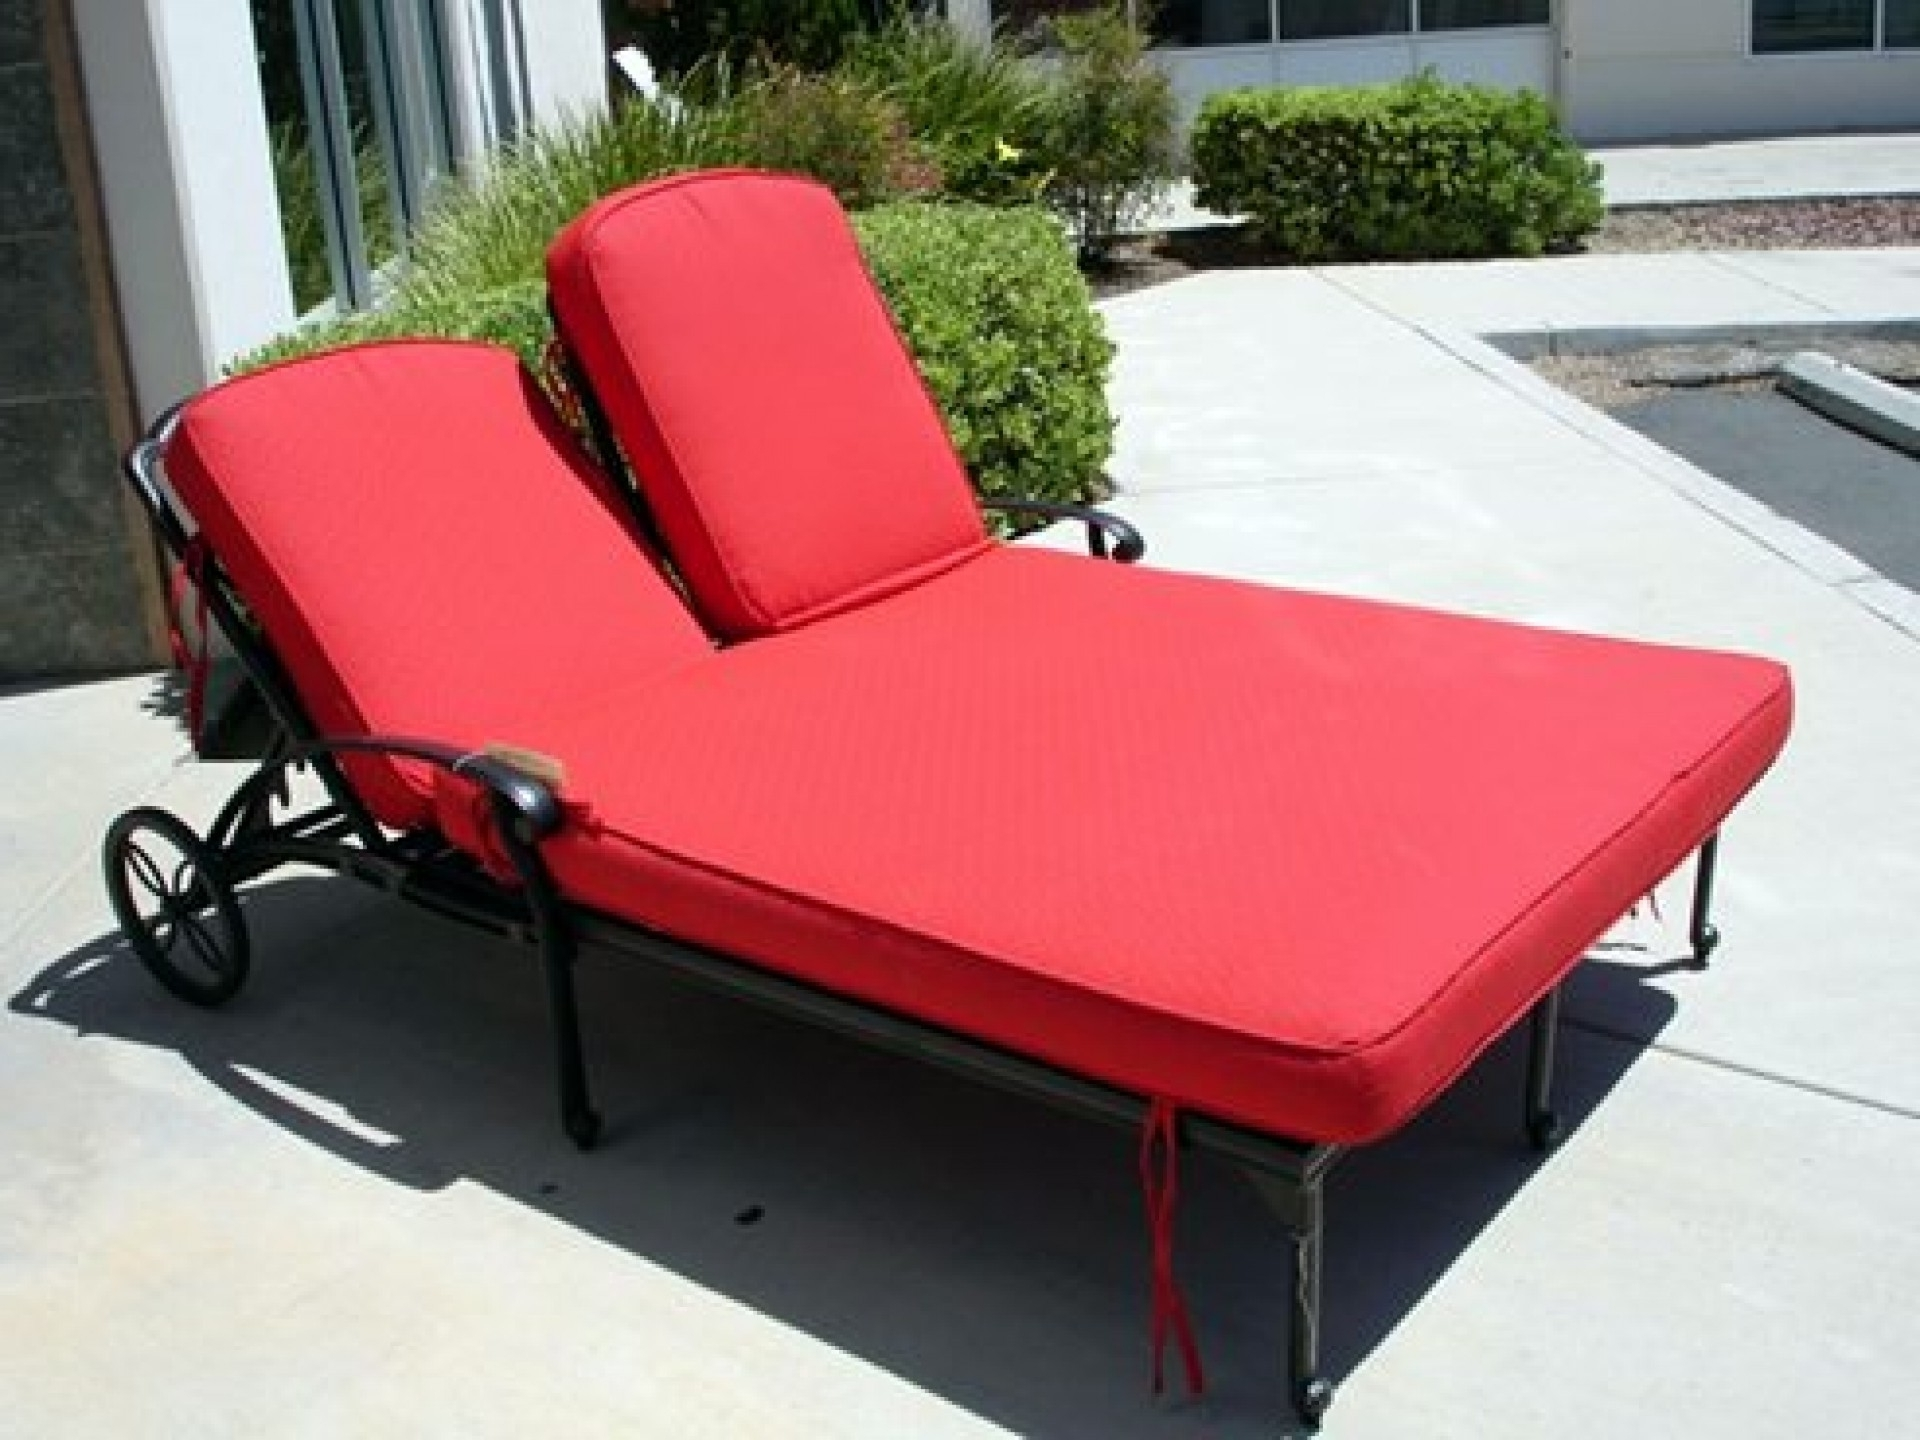 Black Outdoor Chaise Lounge Chairs Pertaining To Trendy Convertible Chair : For Outside Furniture Chaise Lounge Chair Pads (View 1 of 15)